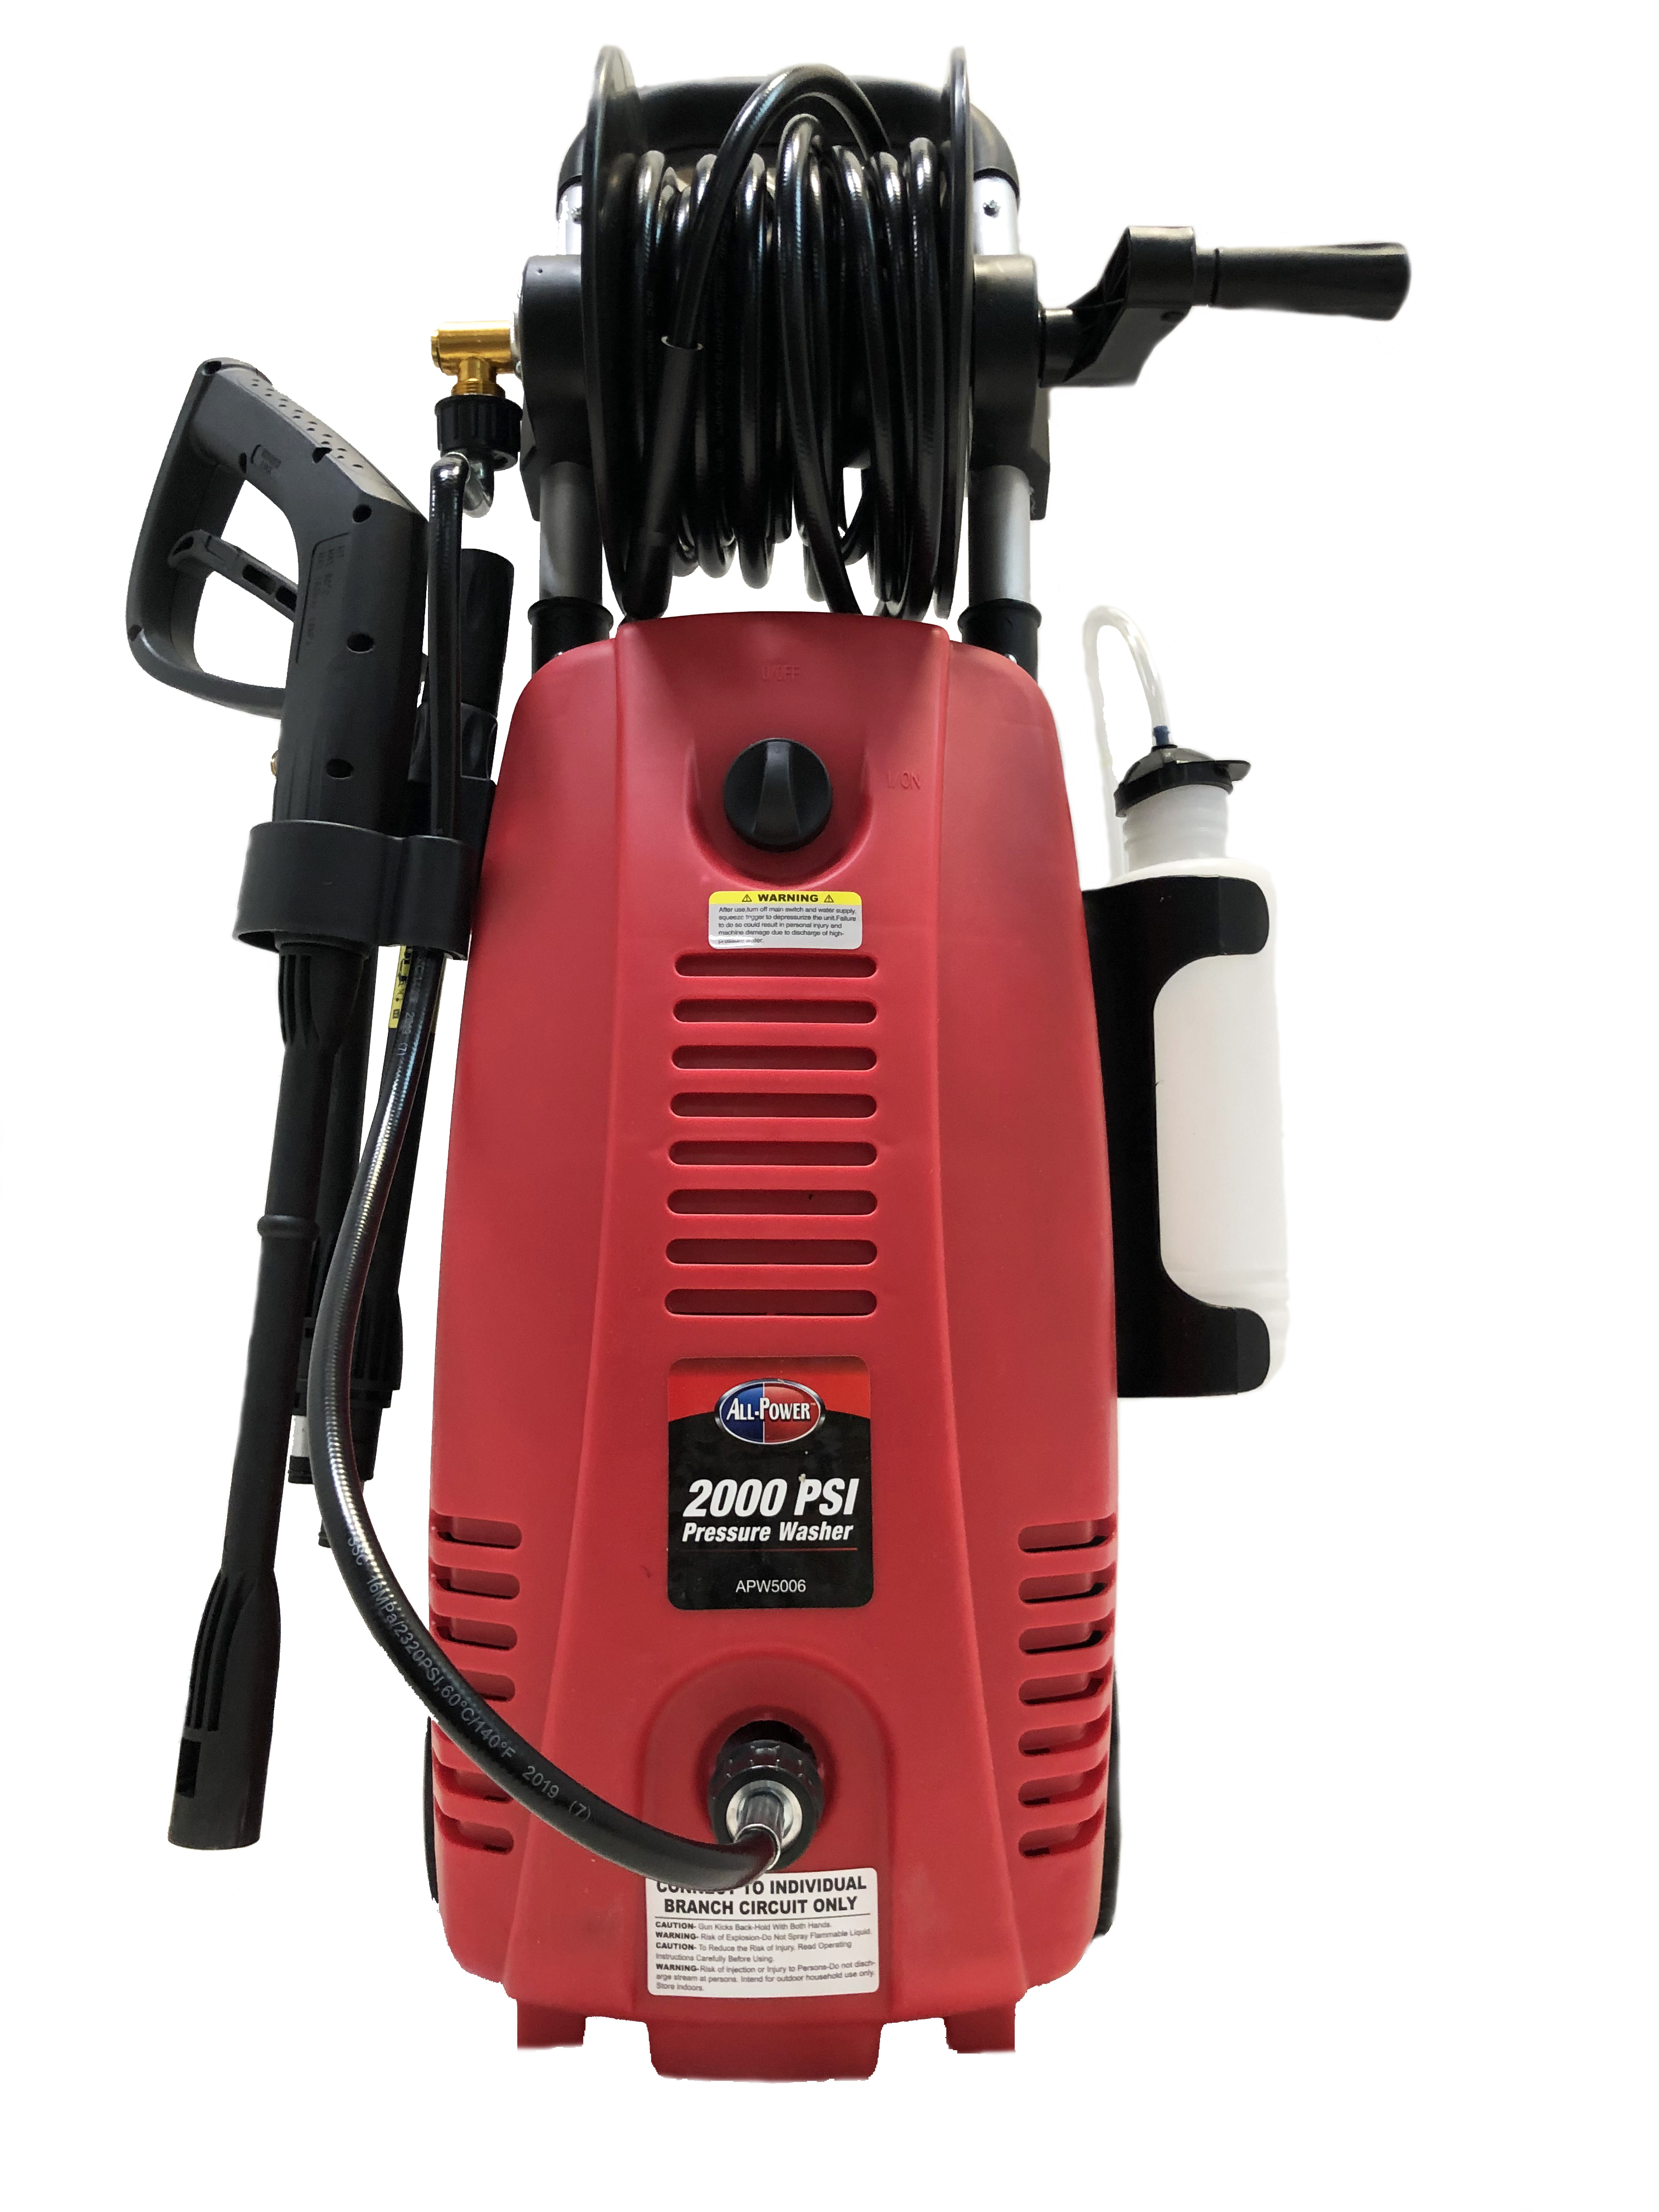 Greenworks 2000 Psi Electric Pressure Washer Parts Manual Guide